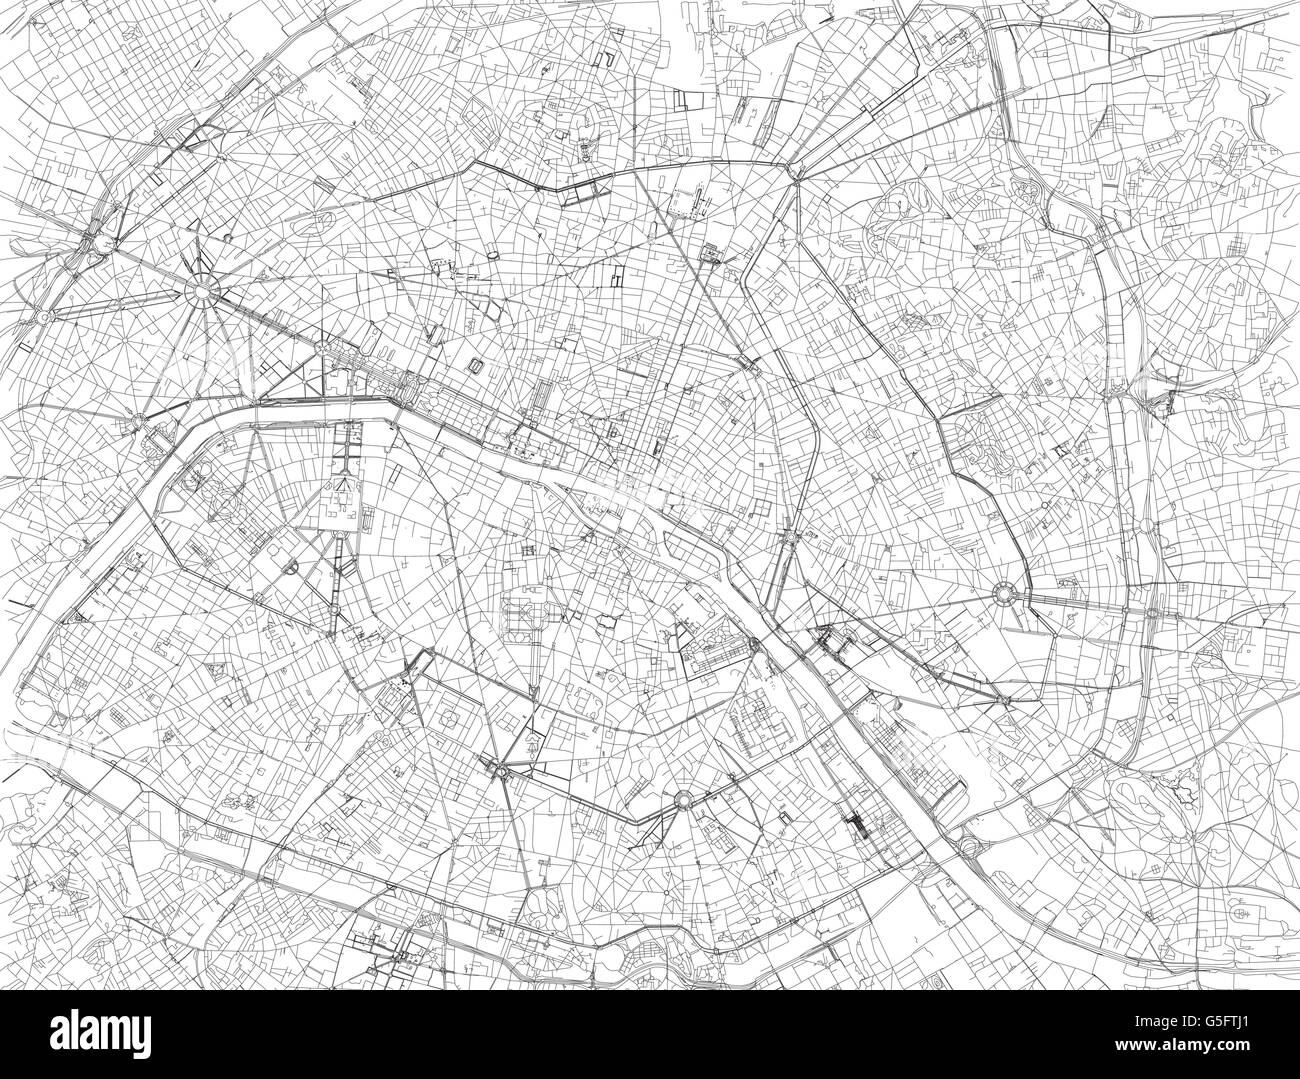 Map Of Paris Satellite View Streets And Highways France – Map of Paris France Streets